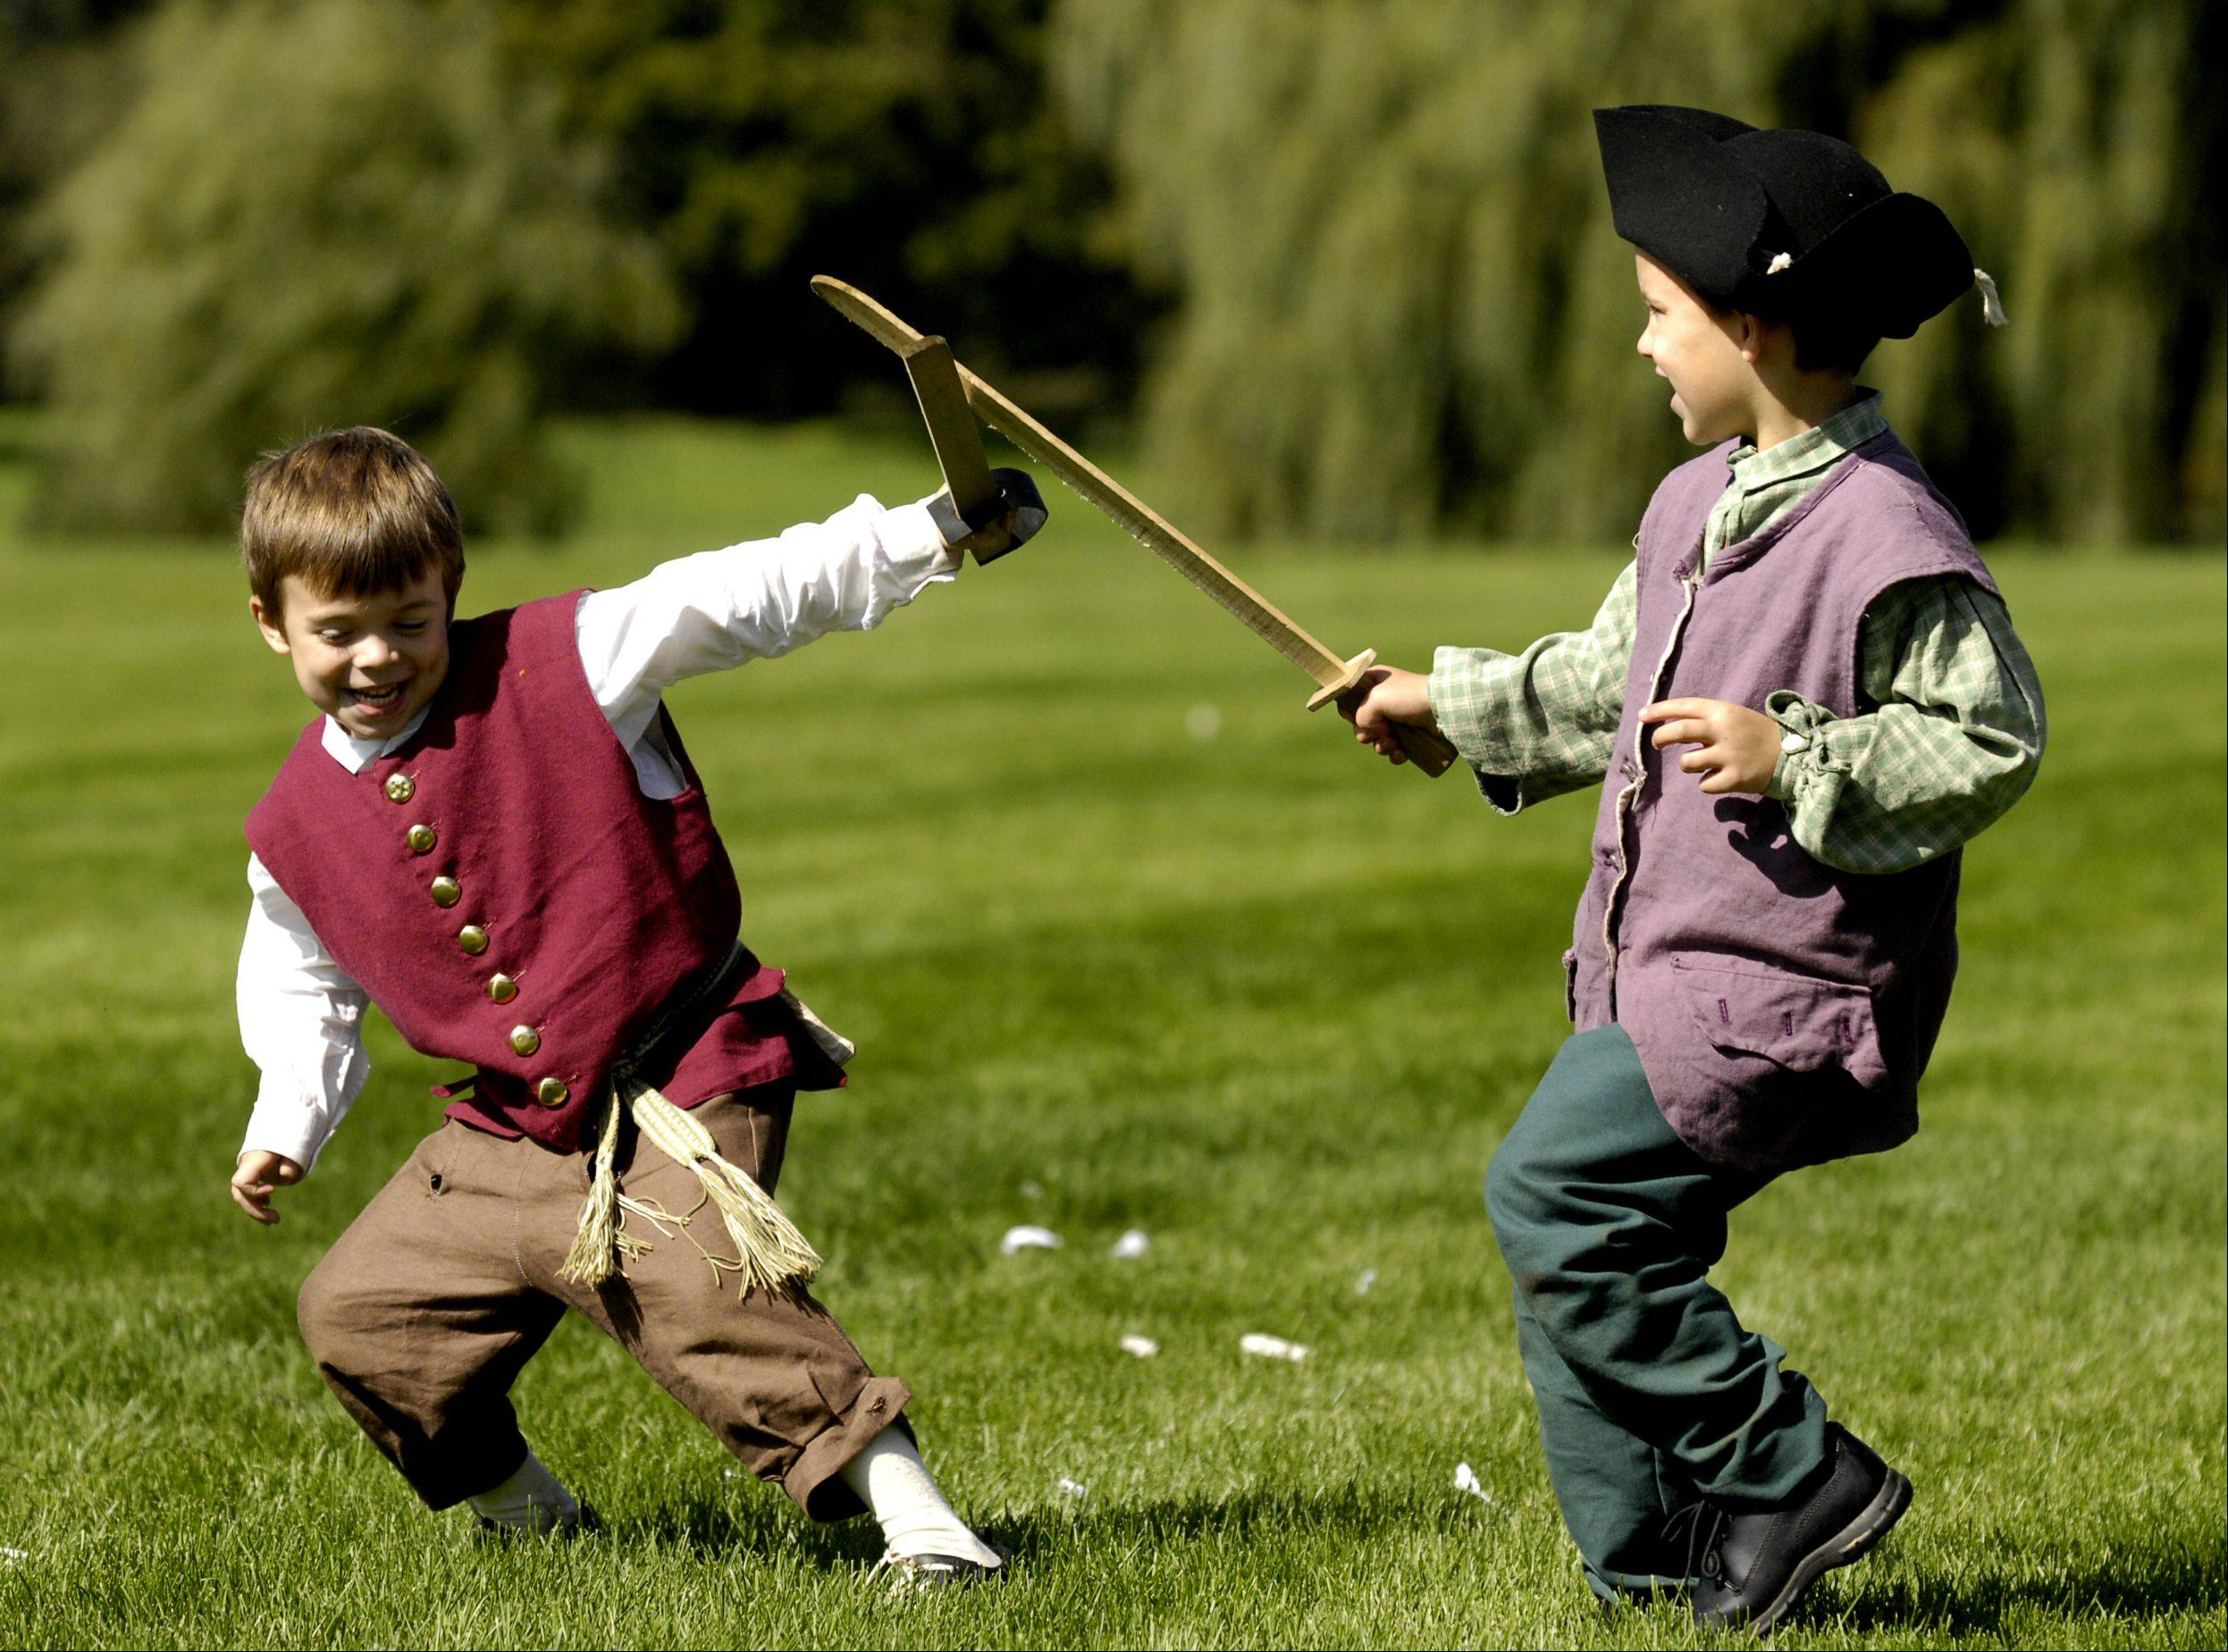 James LeRoy, 6, of Kankakee and Mason Broski, 6, of Hobart, Ind., battle it out during the Revolutionary War re-enactment this weekend at Cantigny Park in Wheaton.